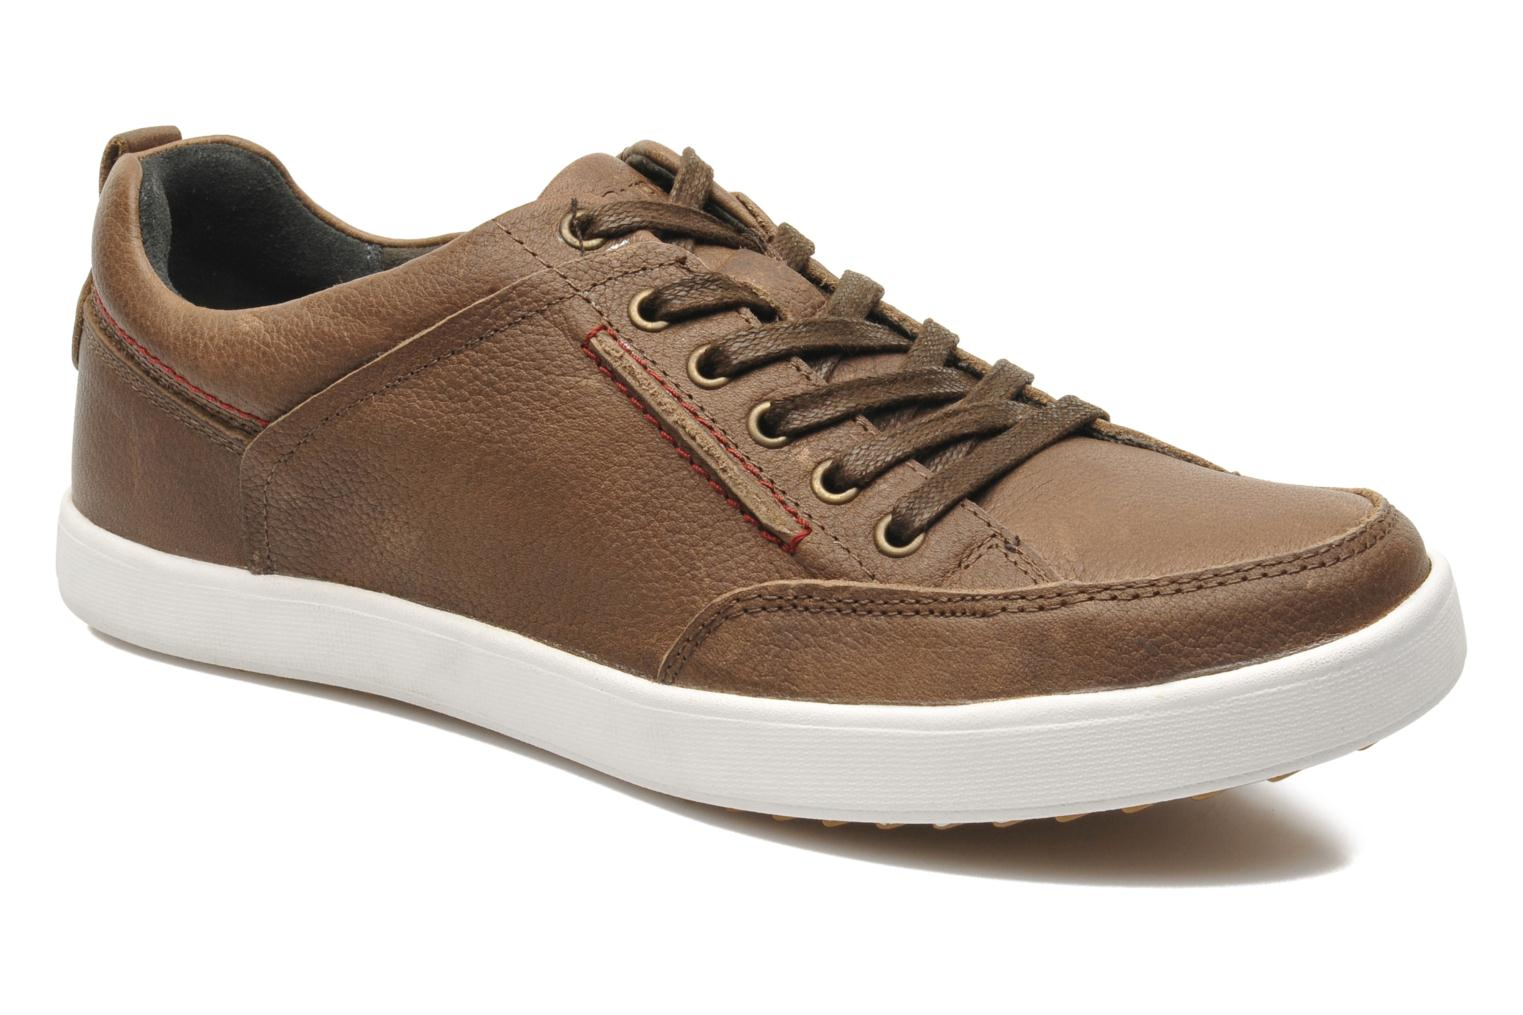 Sneakers Roadside Oxford MT by Hush Puppies